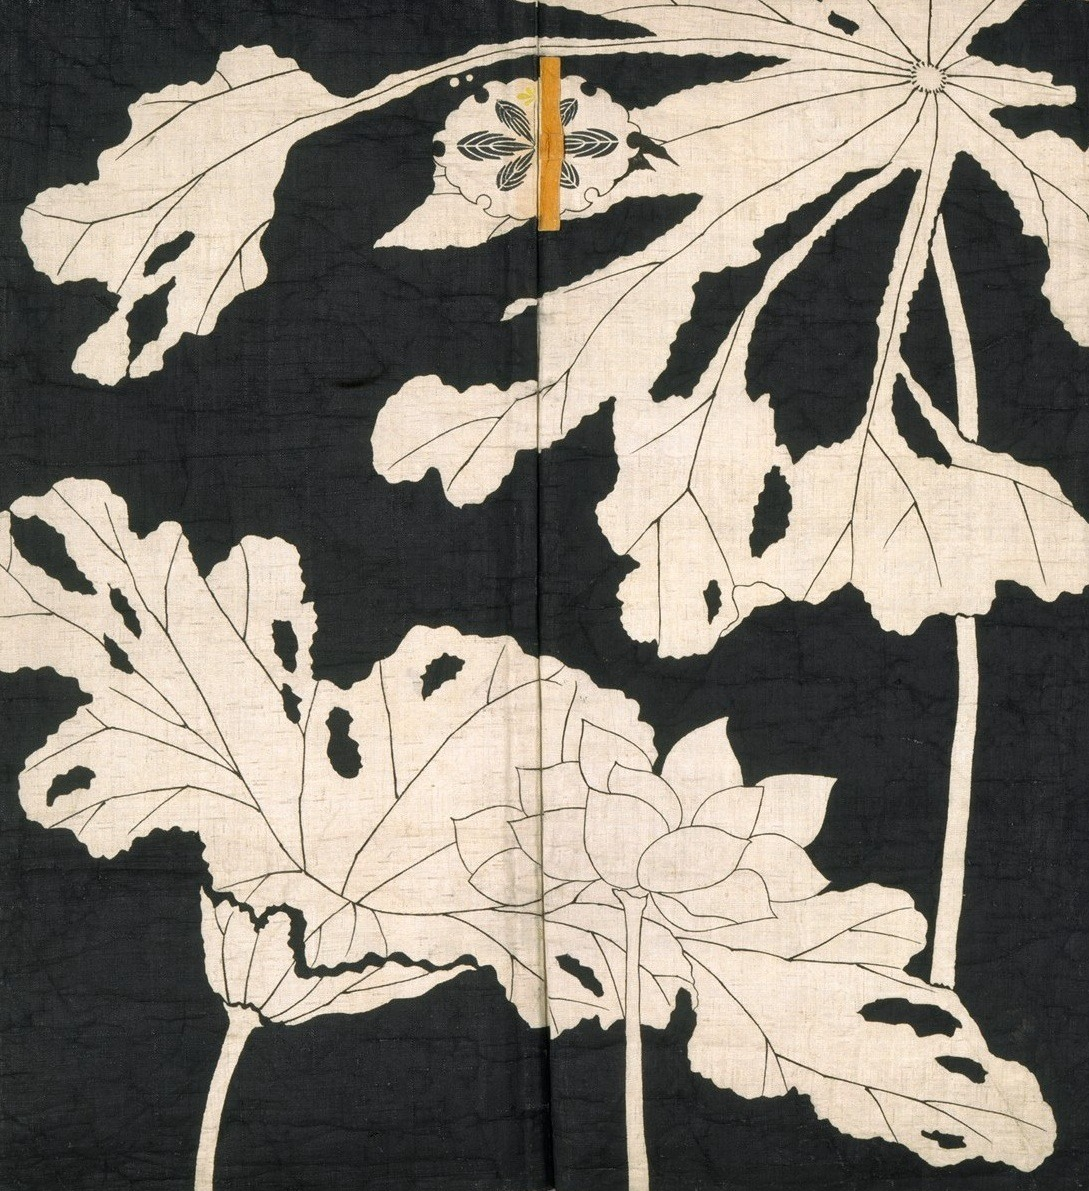 arsvitaest :      Jacket     with design of lotuses [detail]        Origin:        Japanese      Date:      Early 19th century    Medium:  Resist-dyed and painted plain-weave bast fiber  Location:  The Metropolitan Museum of Art, New York